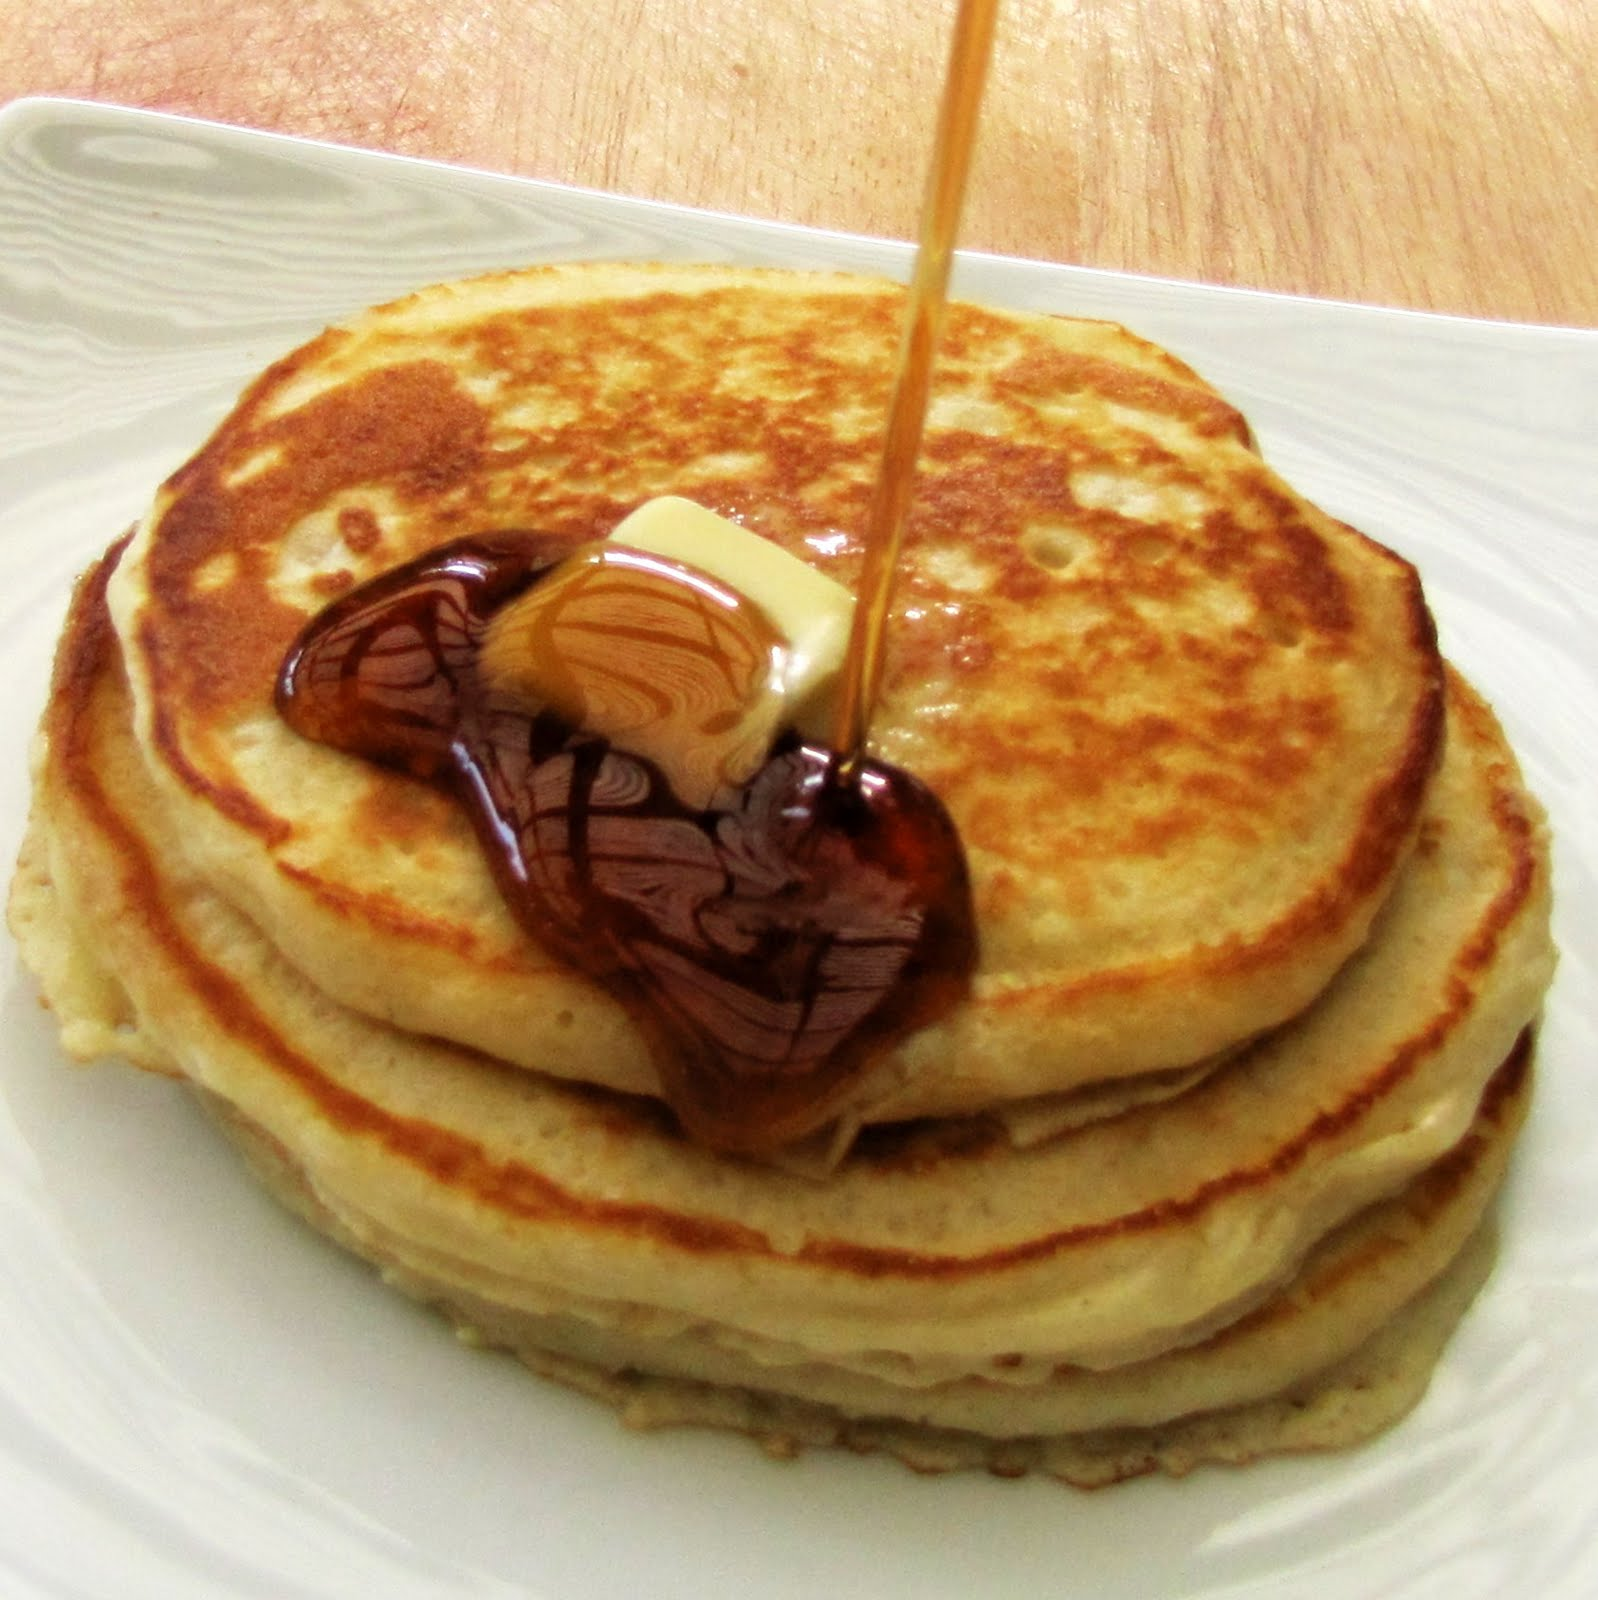 Rumbly in my Tumbly: Good Old Fashioned Pancakes